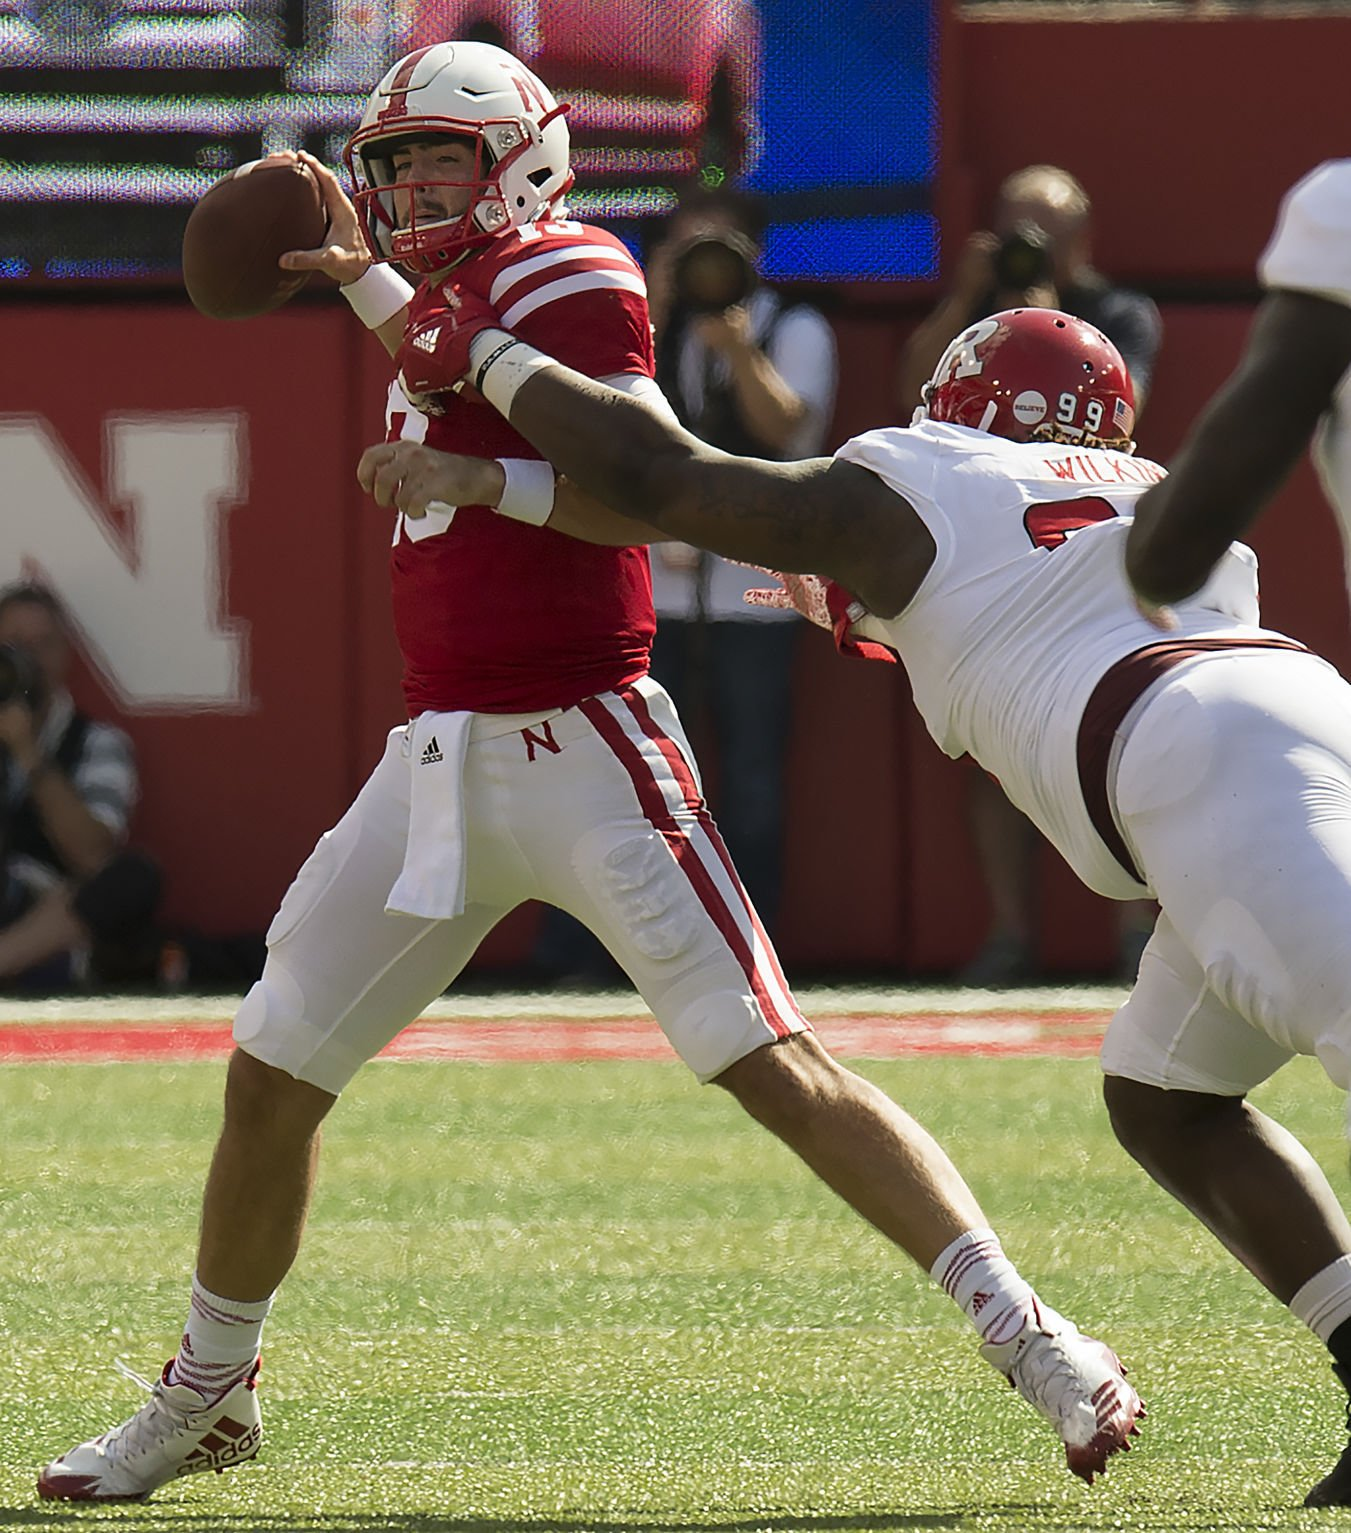 Nebraska overcomes early deficit to win Big Ten opener